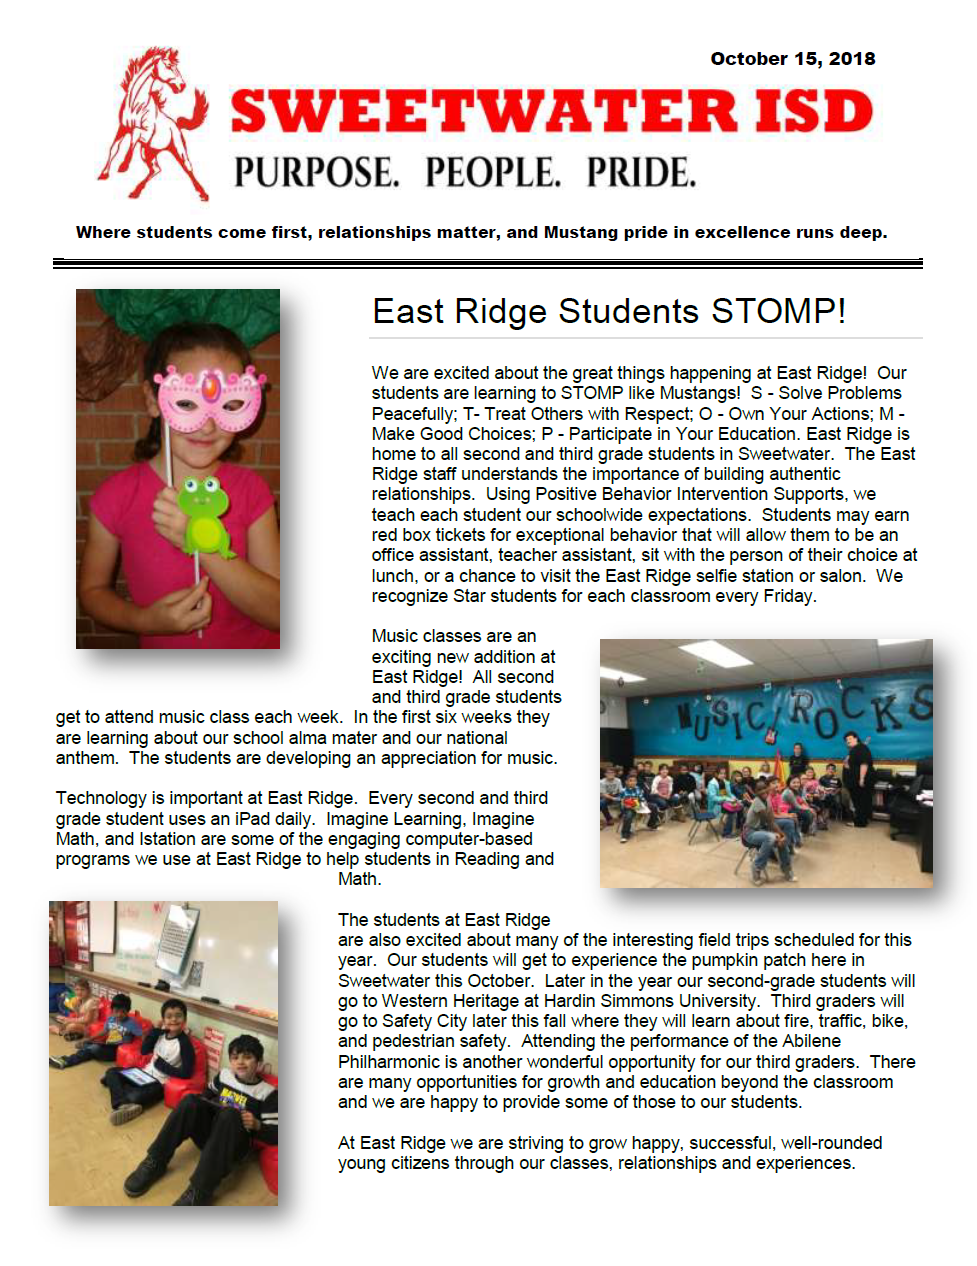 SISD Newsletter 10-15-2018 p1.png